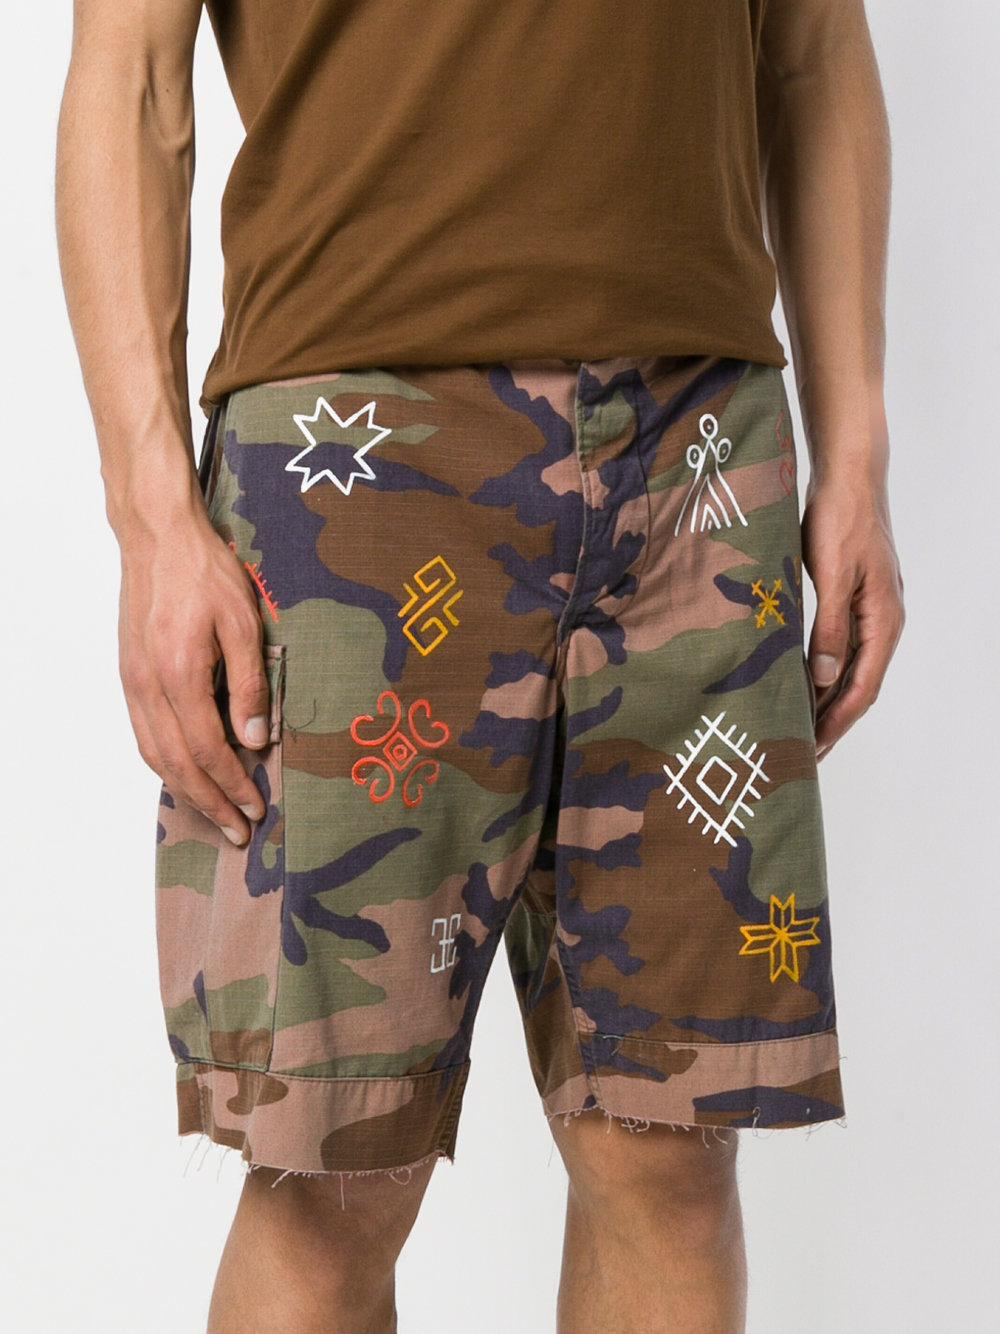 840faa42c7 Htc Los Angeles Camouflage Fitted Shorts in Green for Men - Lyst